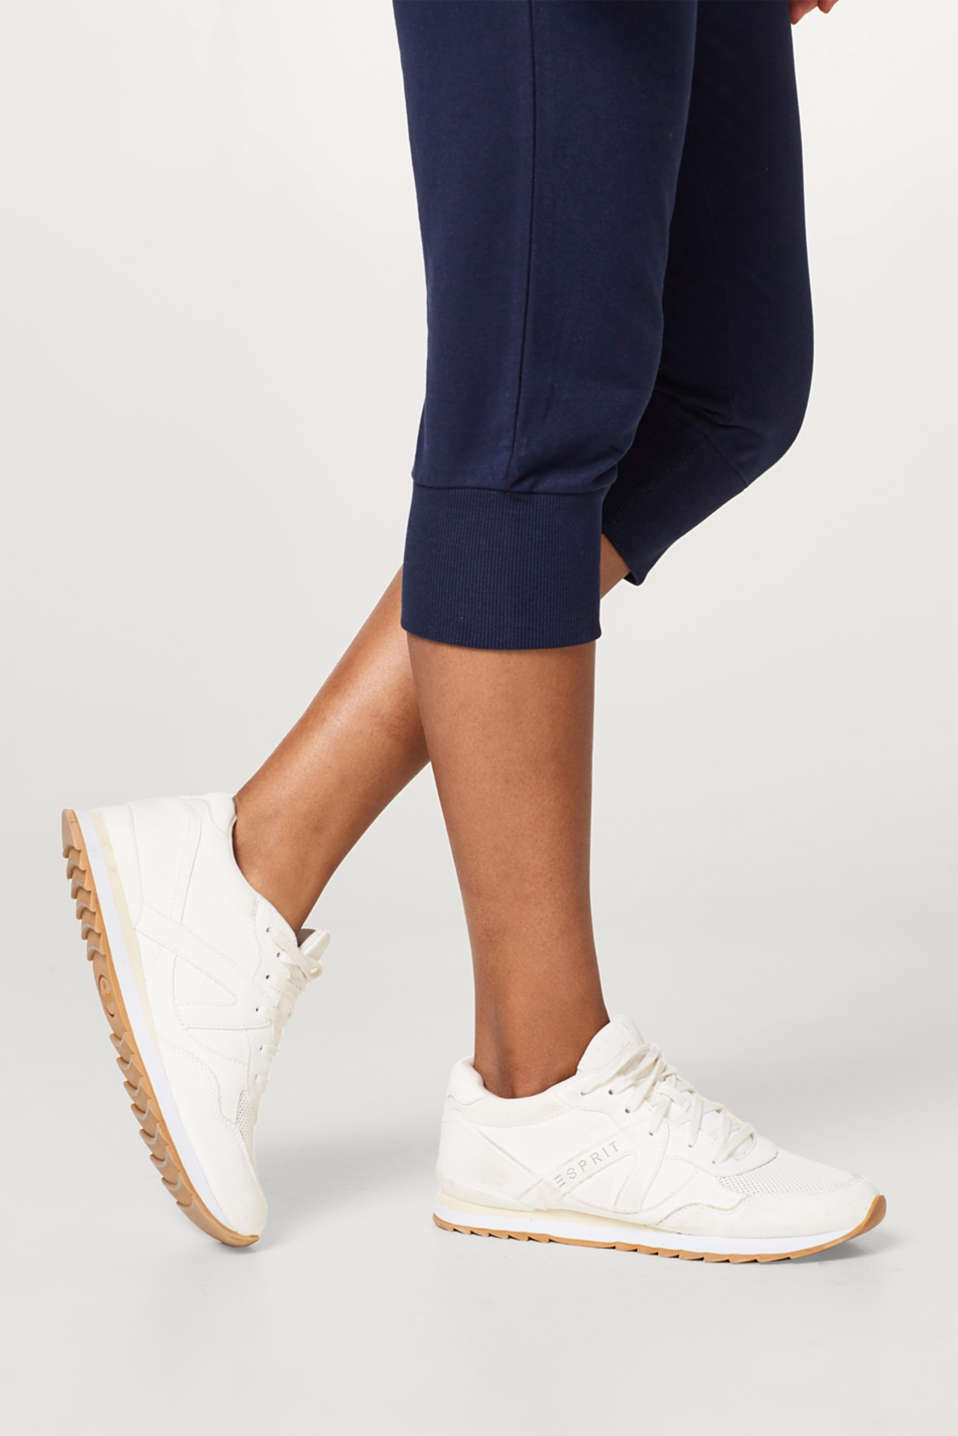 Capris made of soft sweatshirt fabric